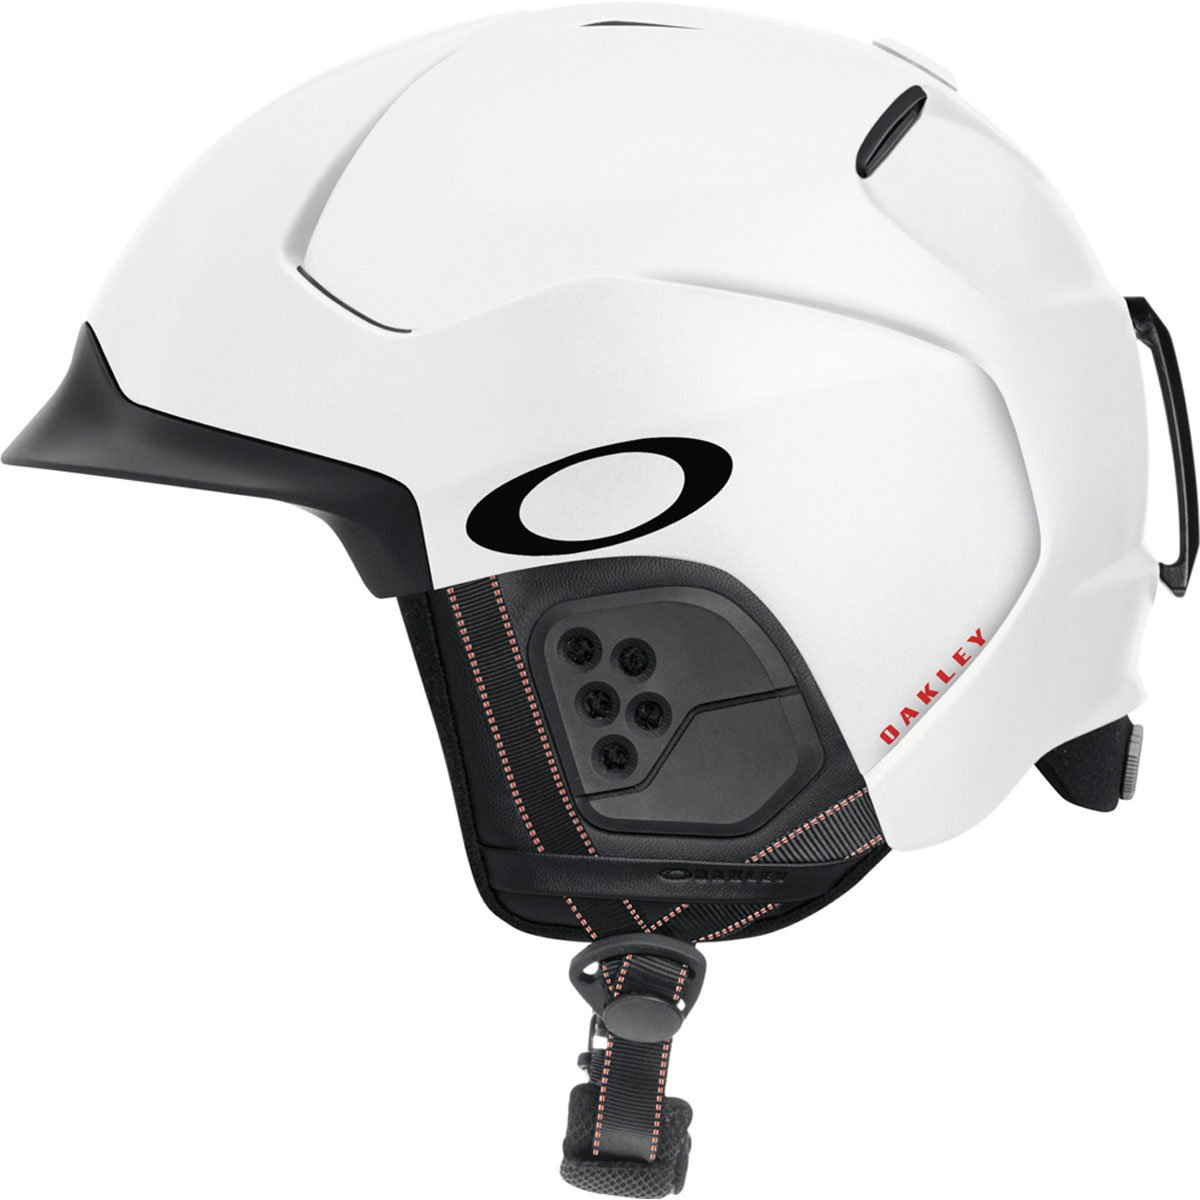 Top 15 Best Ski Helmet for Kids Reviews in 2020 12